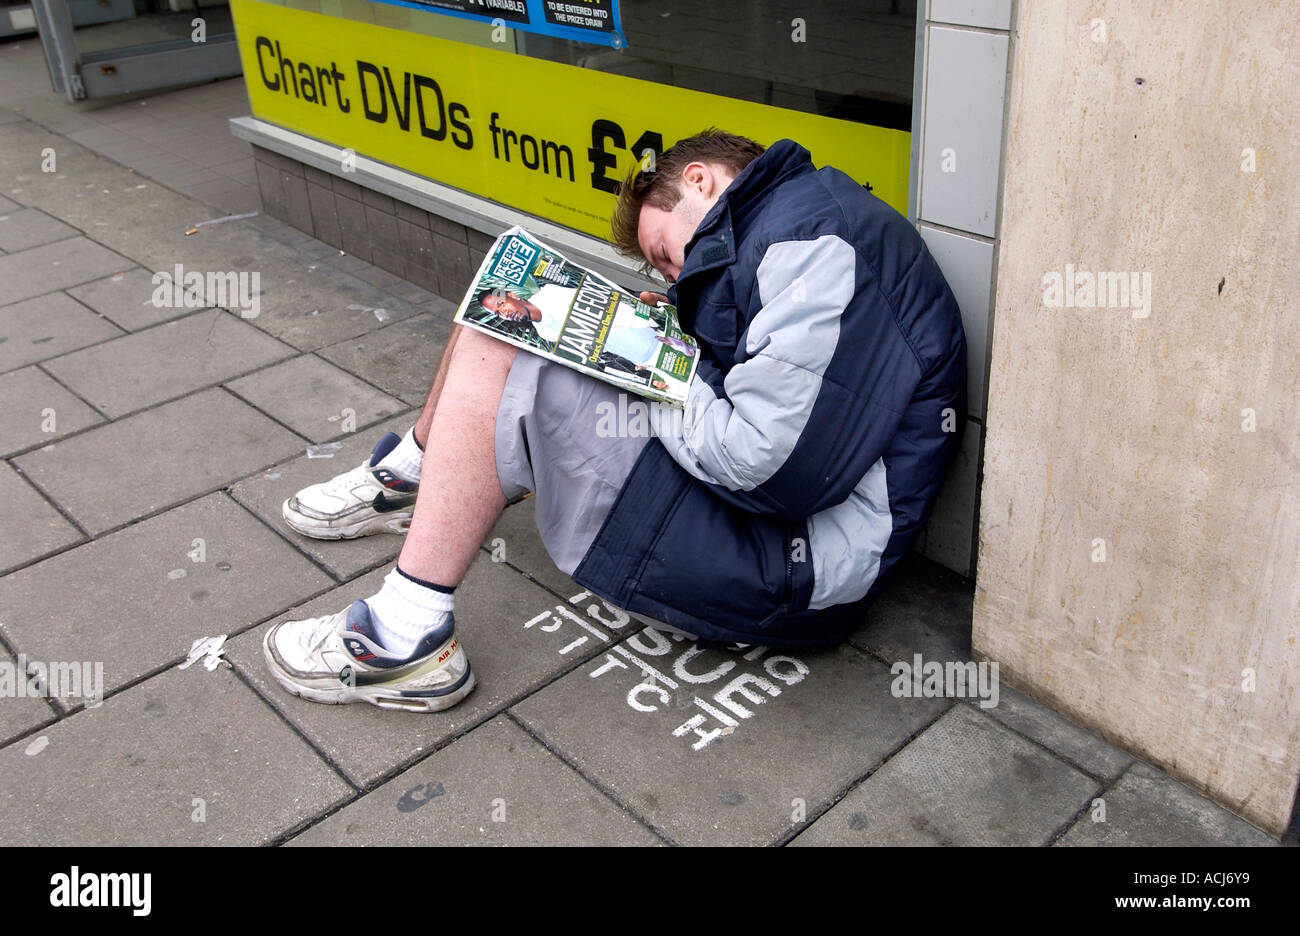 A Big Issue seller asleep on his pitch outside a HMV record shop in Western Road Brighton - Stock Image